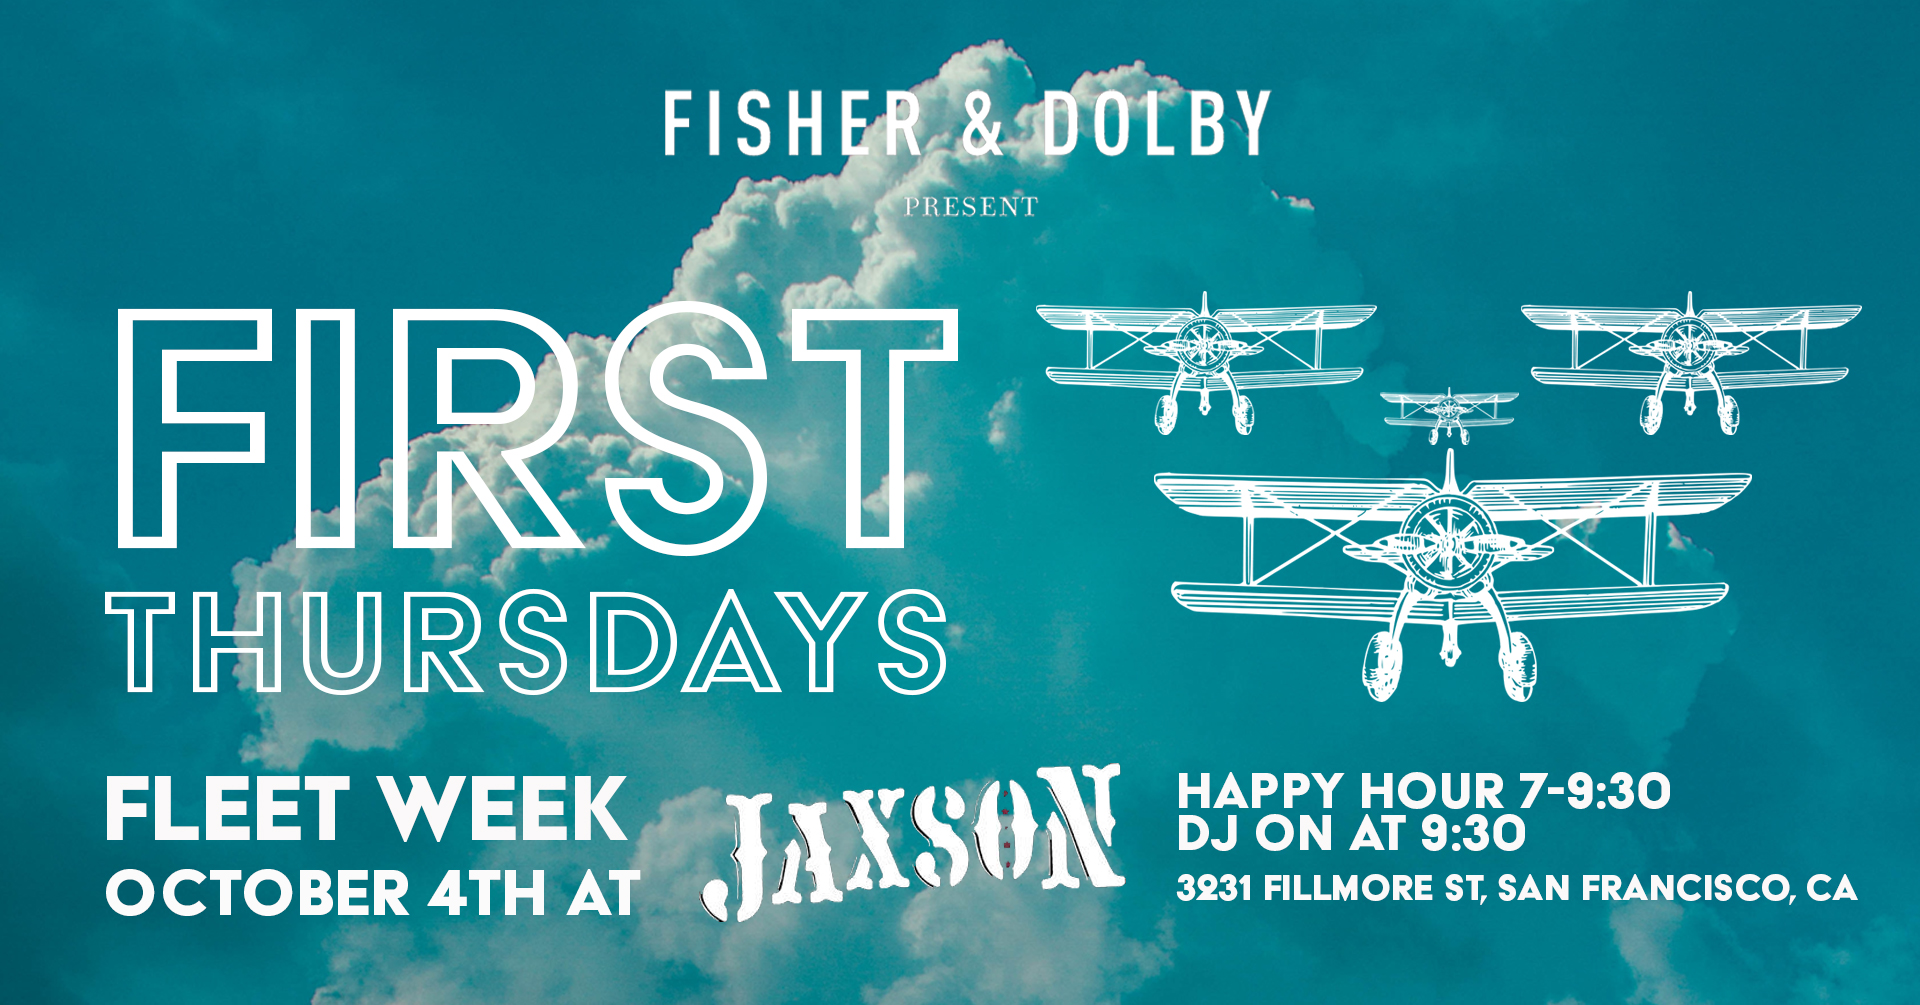 Fisher&Dolby-FB_FirstThursdays-FleetWeek.jpg